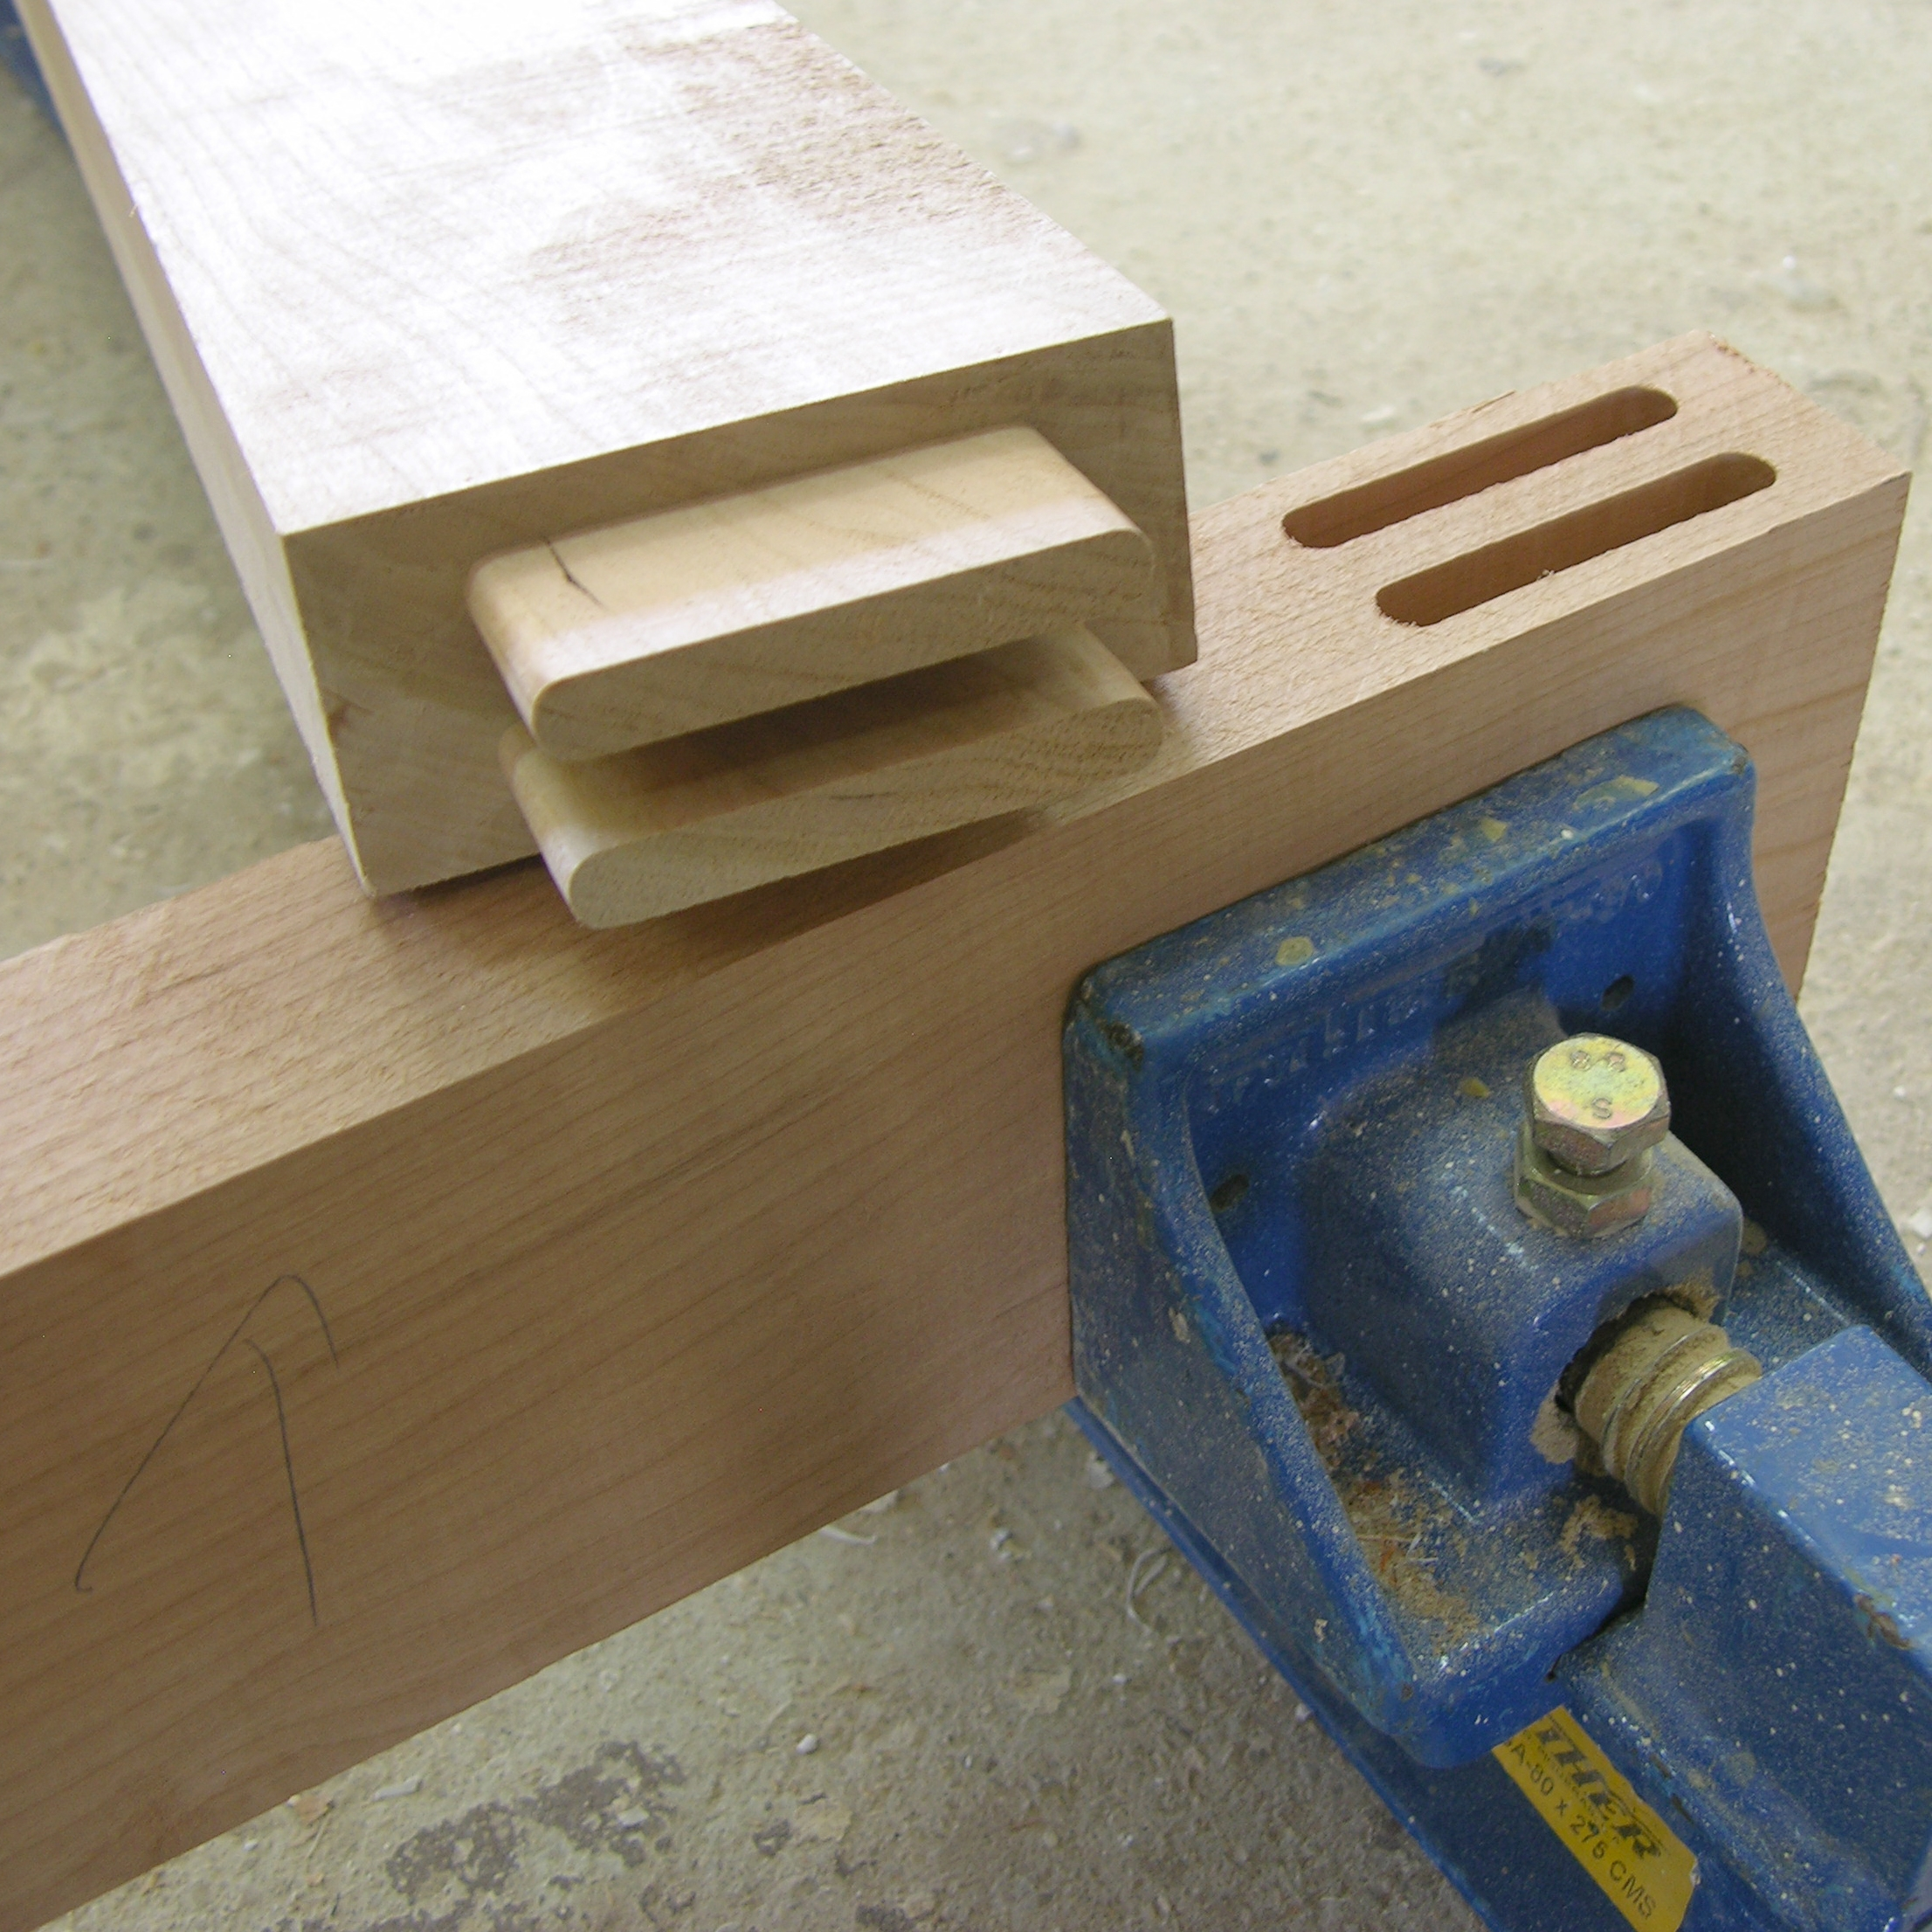 Quality: A vice holds a piece of wood to receive another joined piece